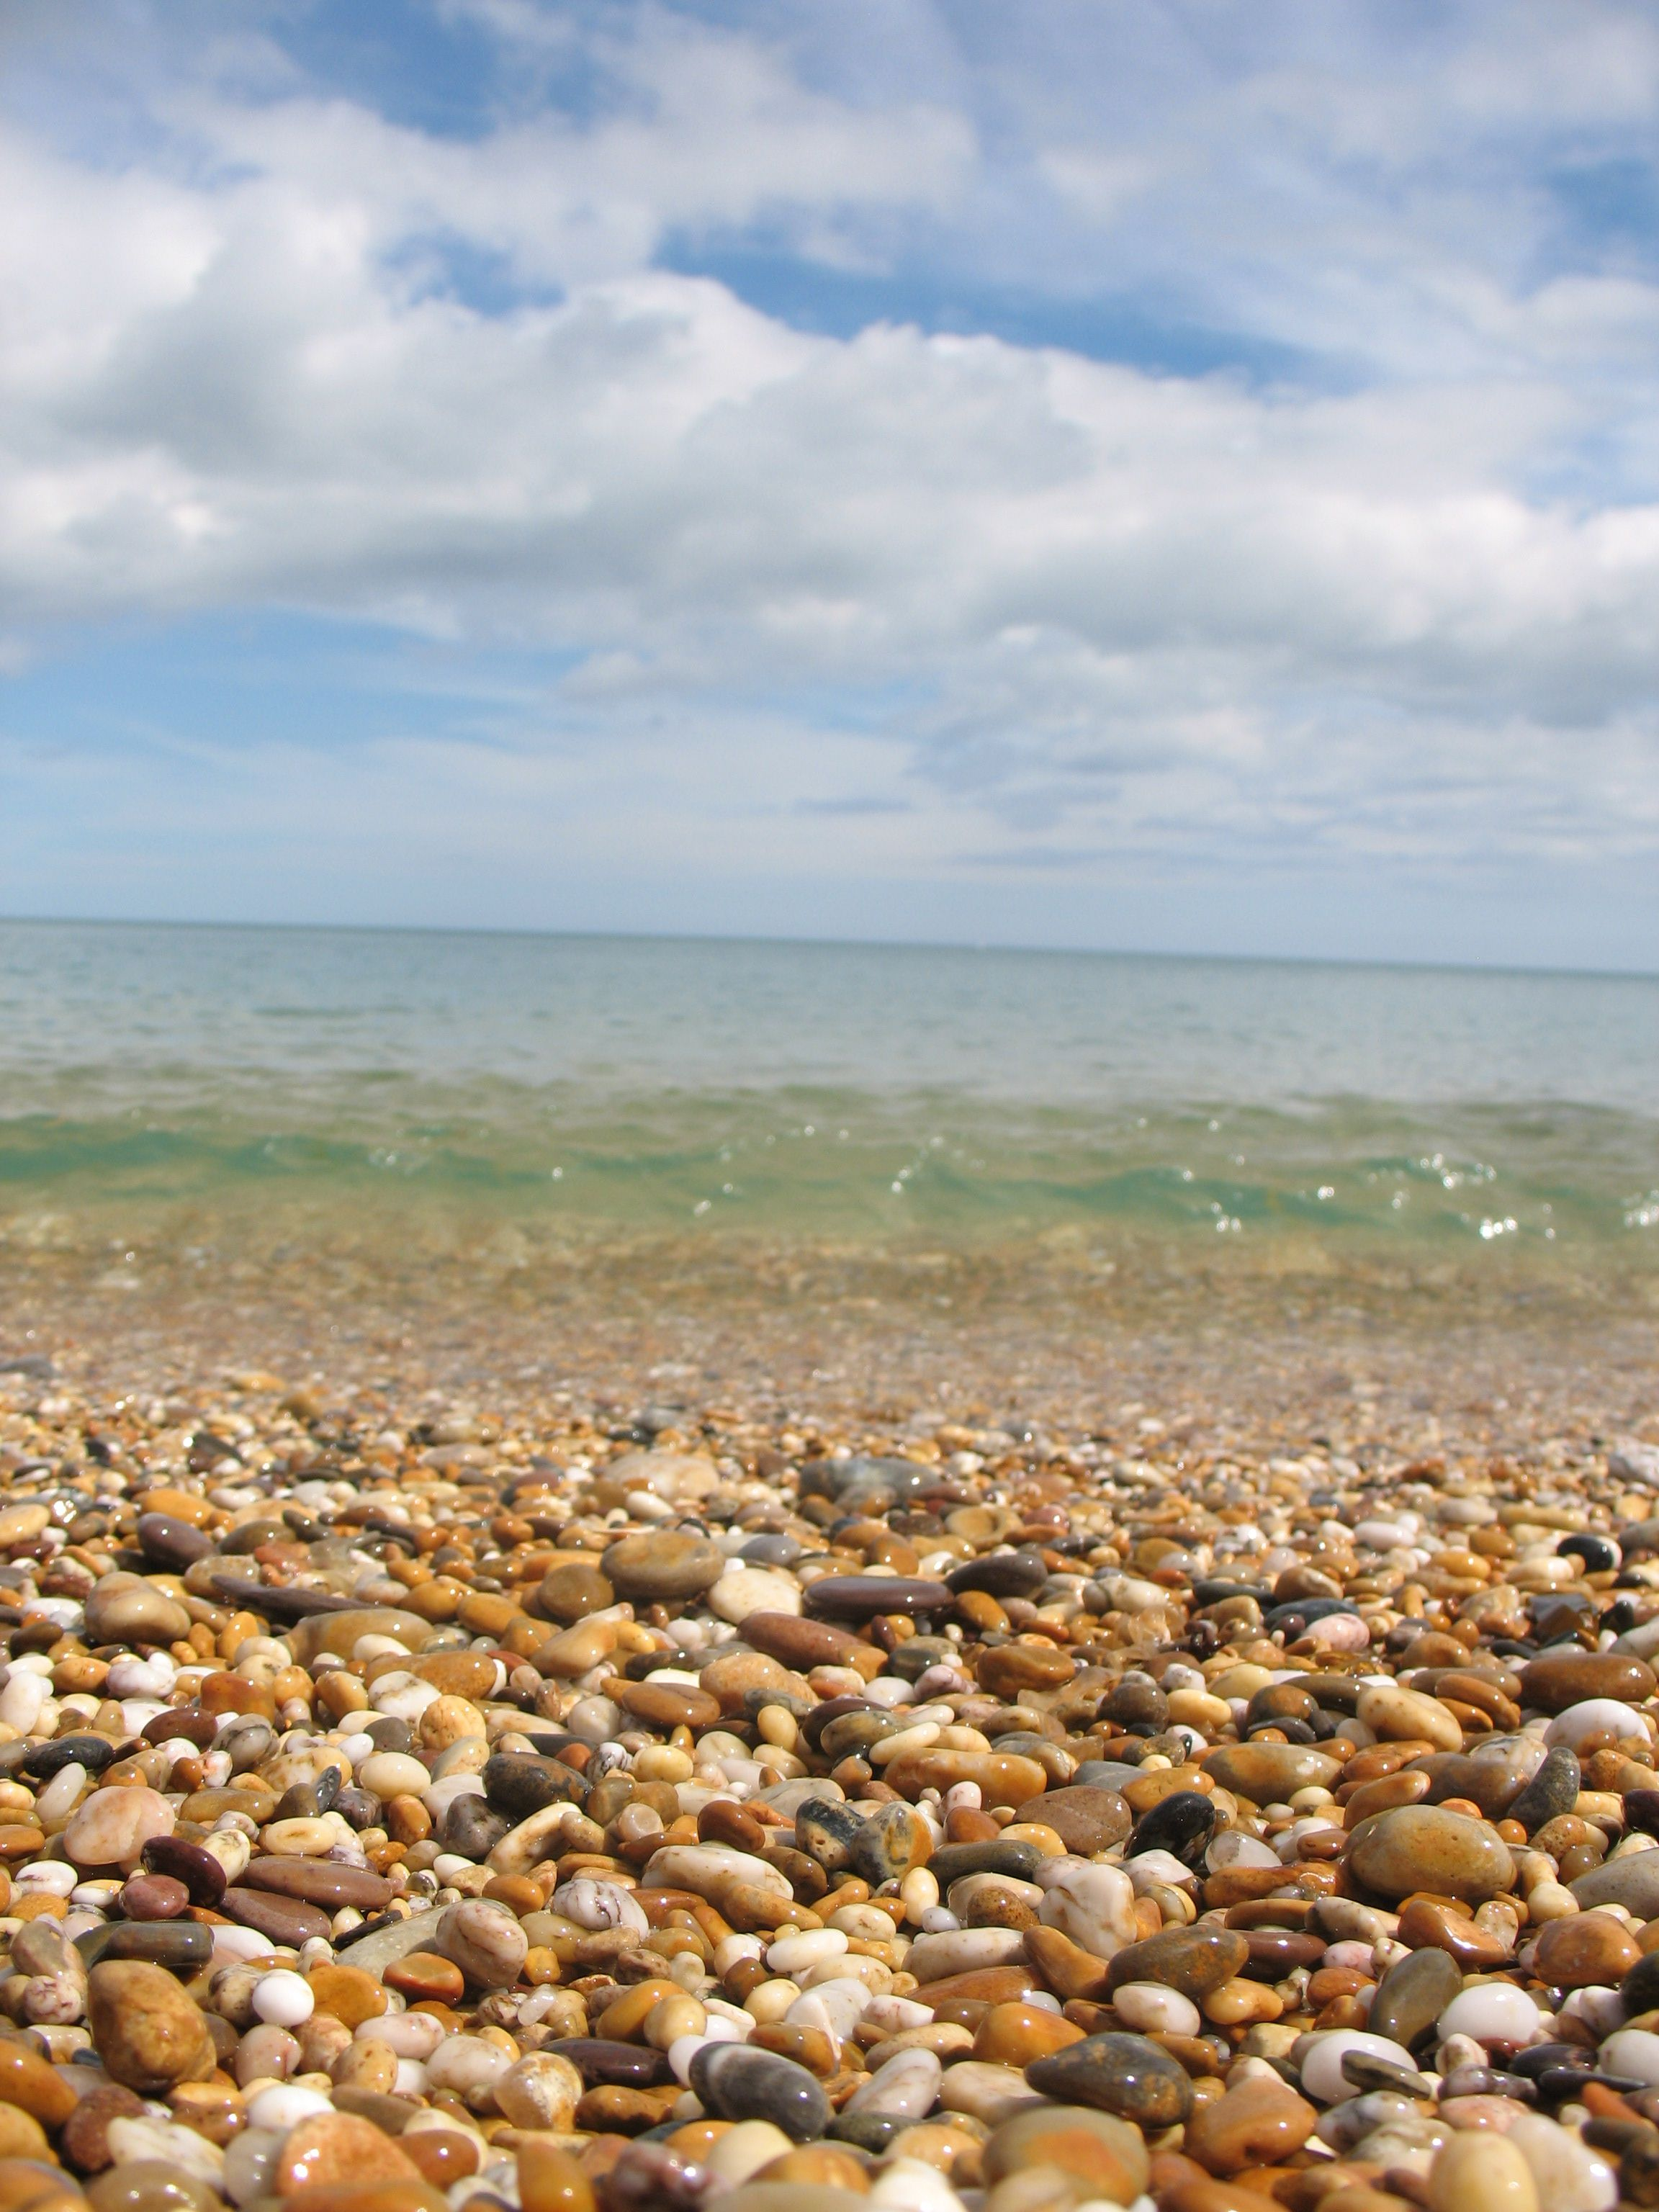 i love the sound of the sea as it rushes over the pebbles rh pinterest com